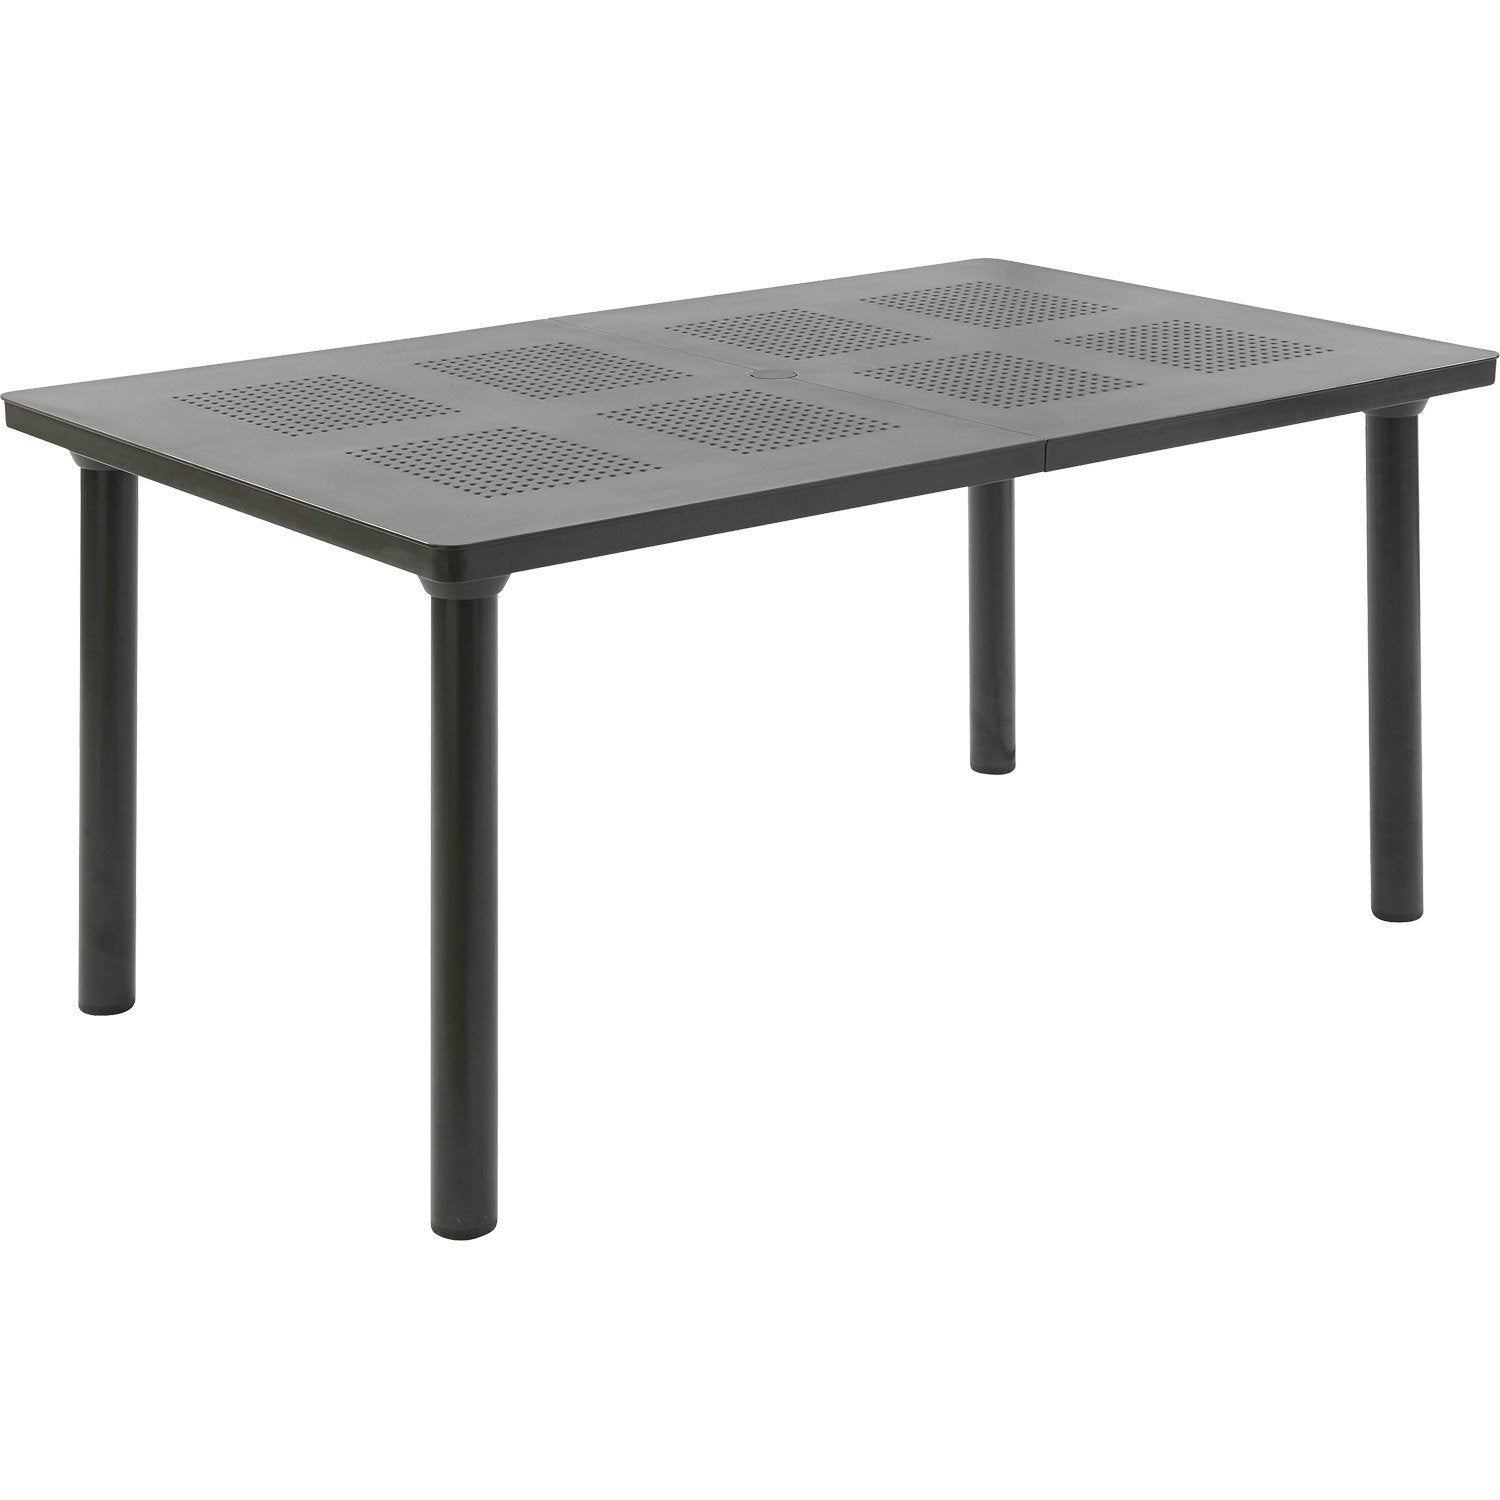 Table de jardin en r sine libeccio gris antracithe nardi for Meuble de jardin nardi